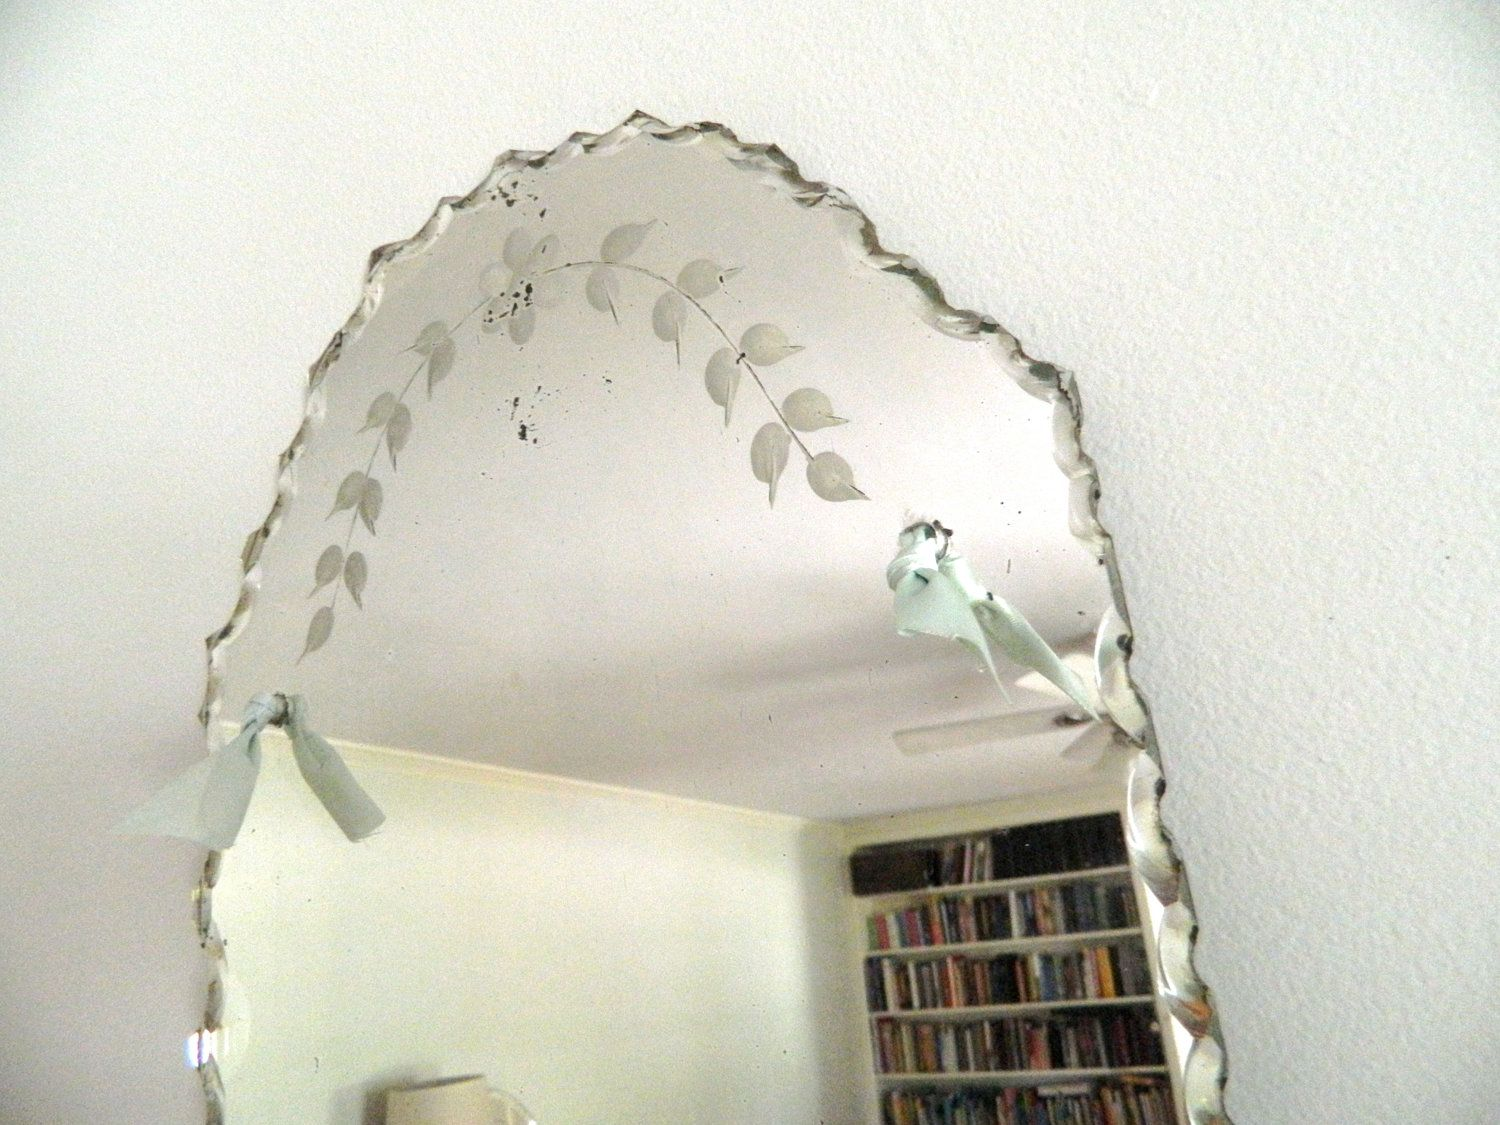 frameless etched mirrors - Google Search | Bathroom | Pinterest ...